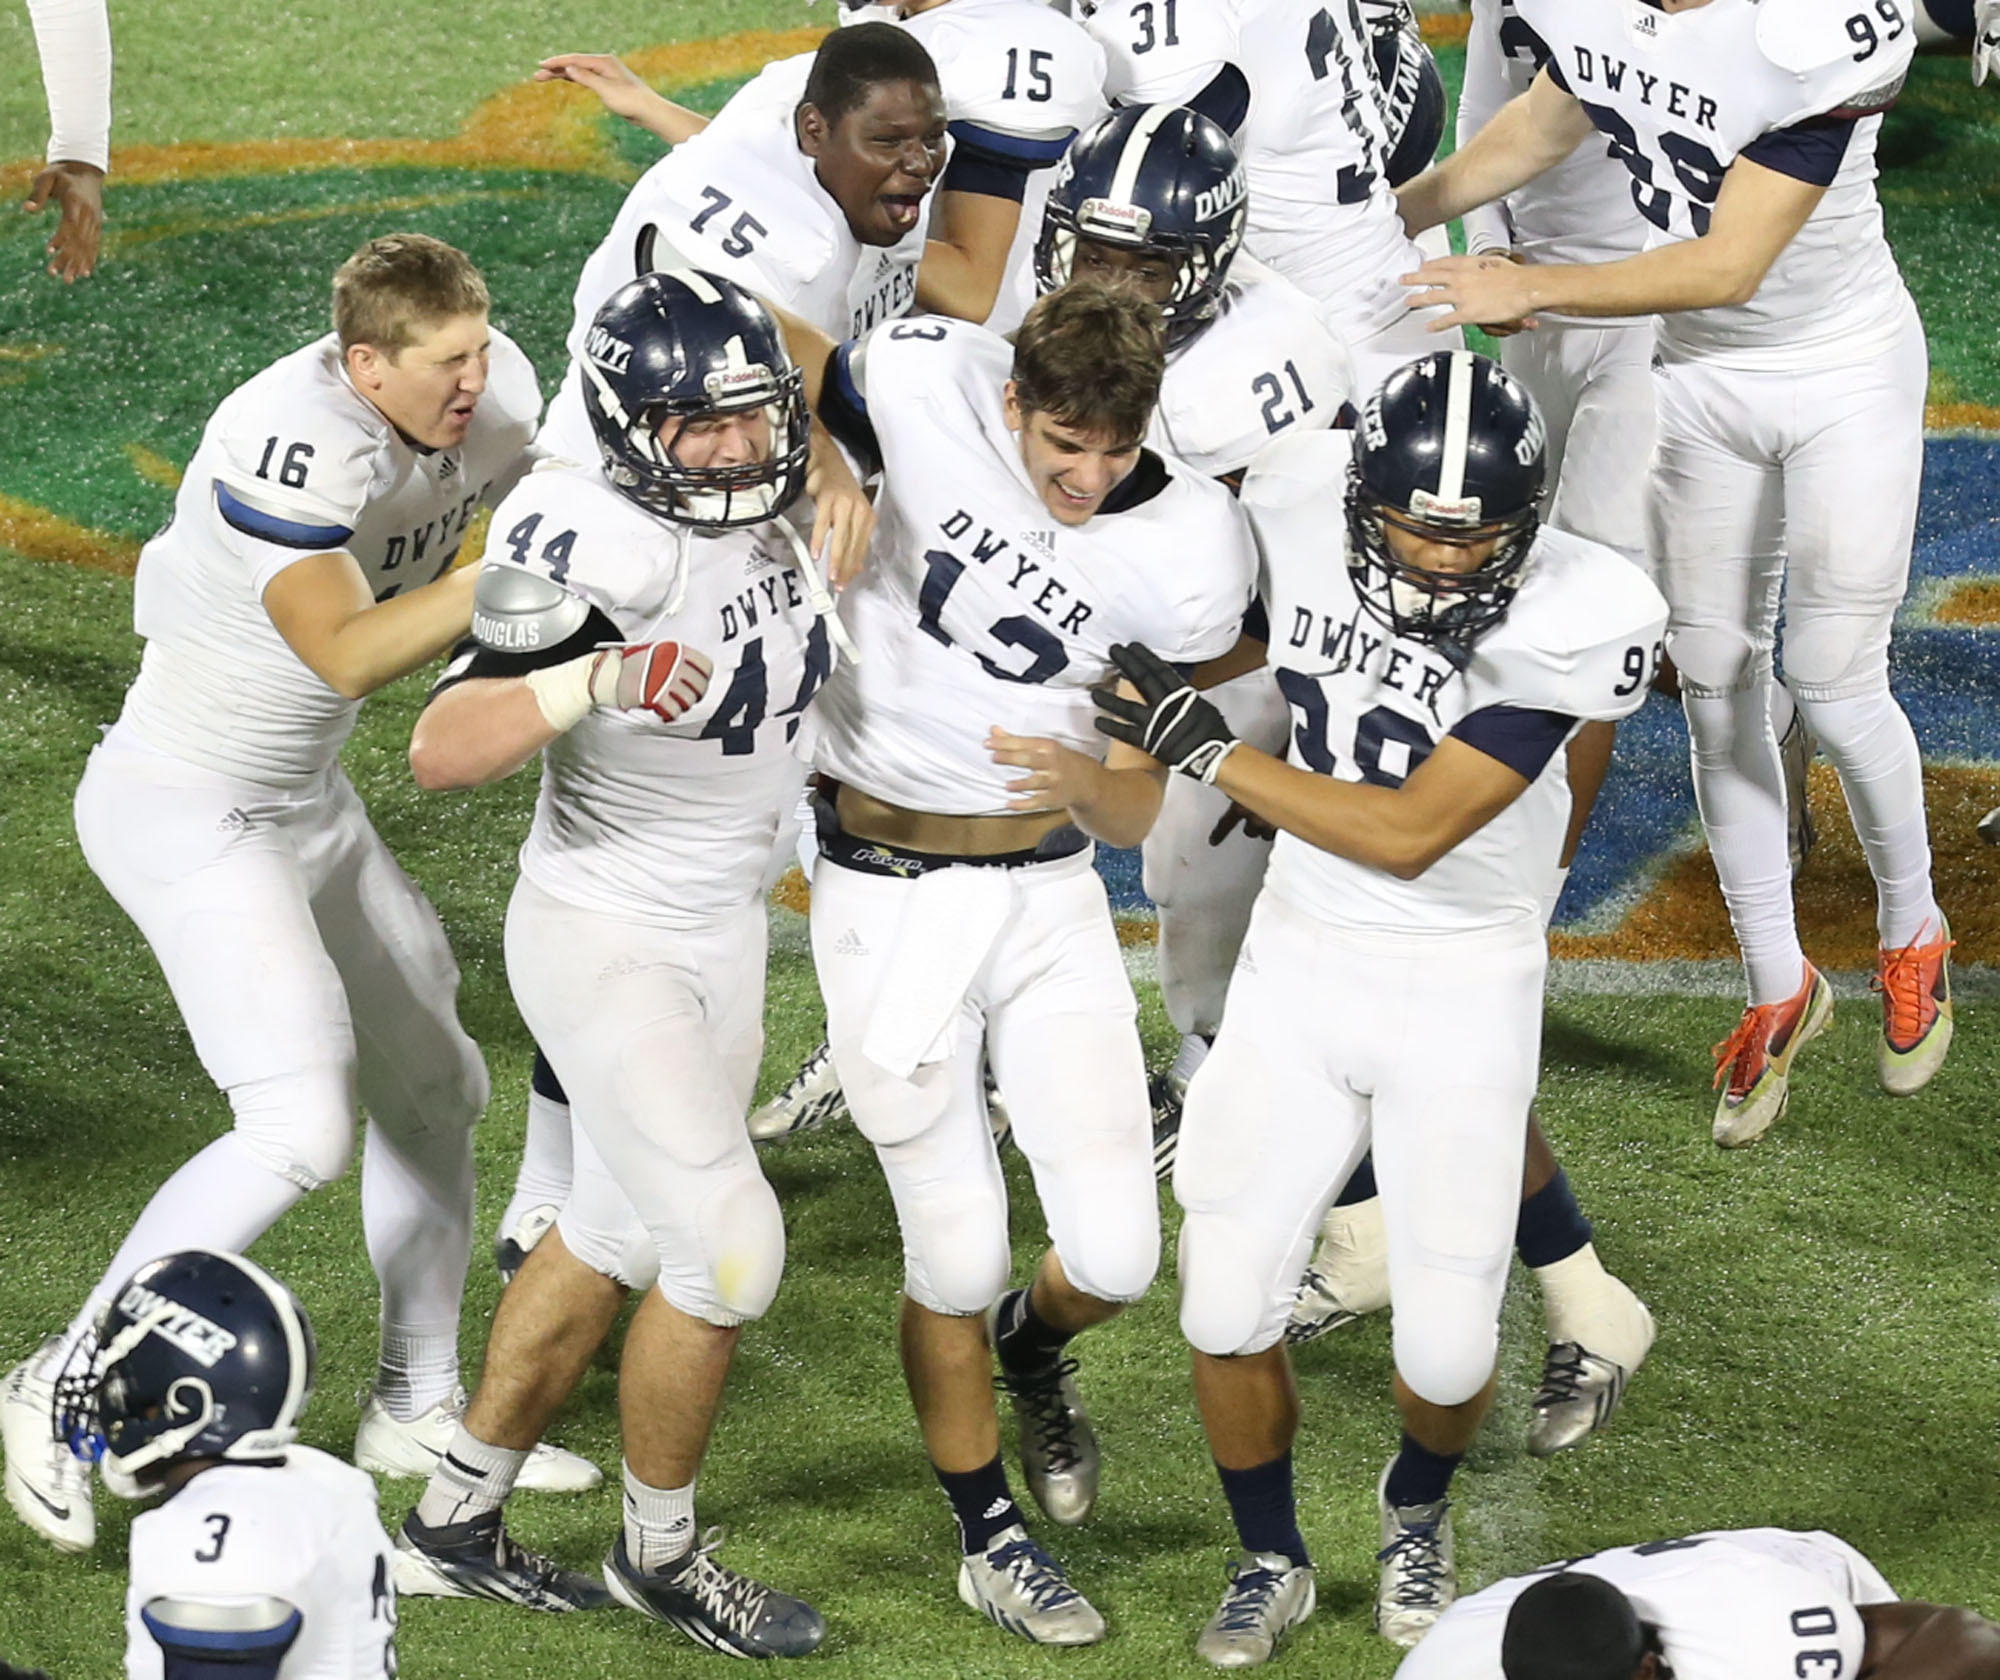 Dwyer players celebrate on the field after winning the Class 7A state football championship.